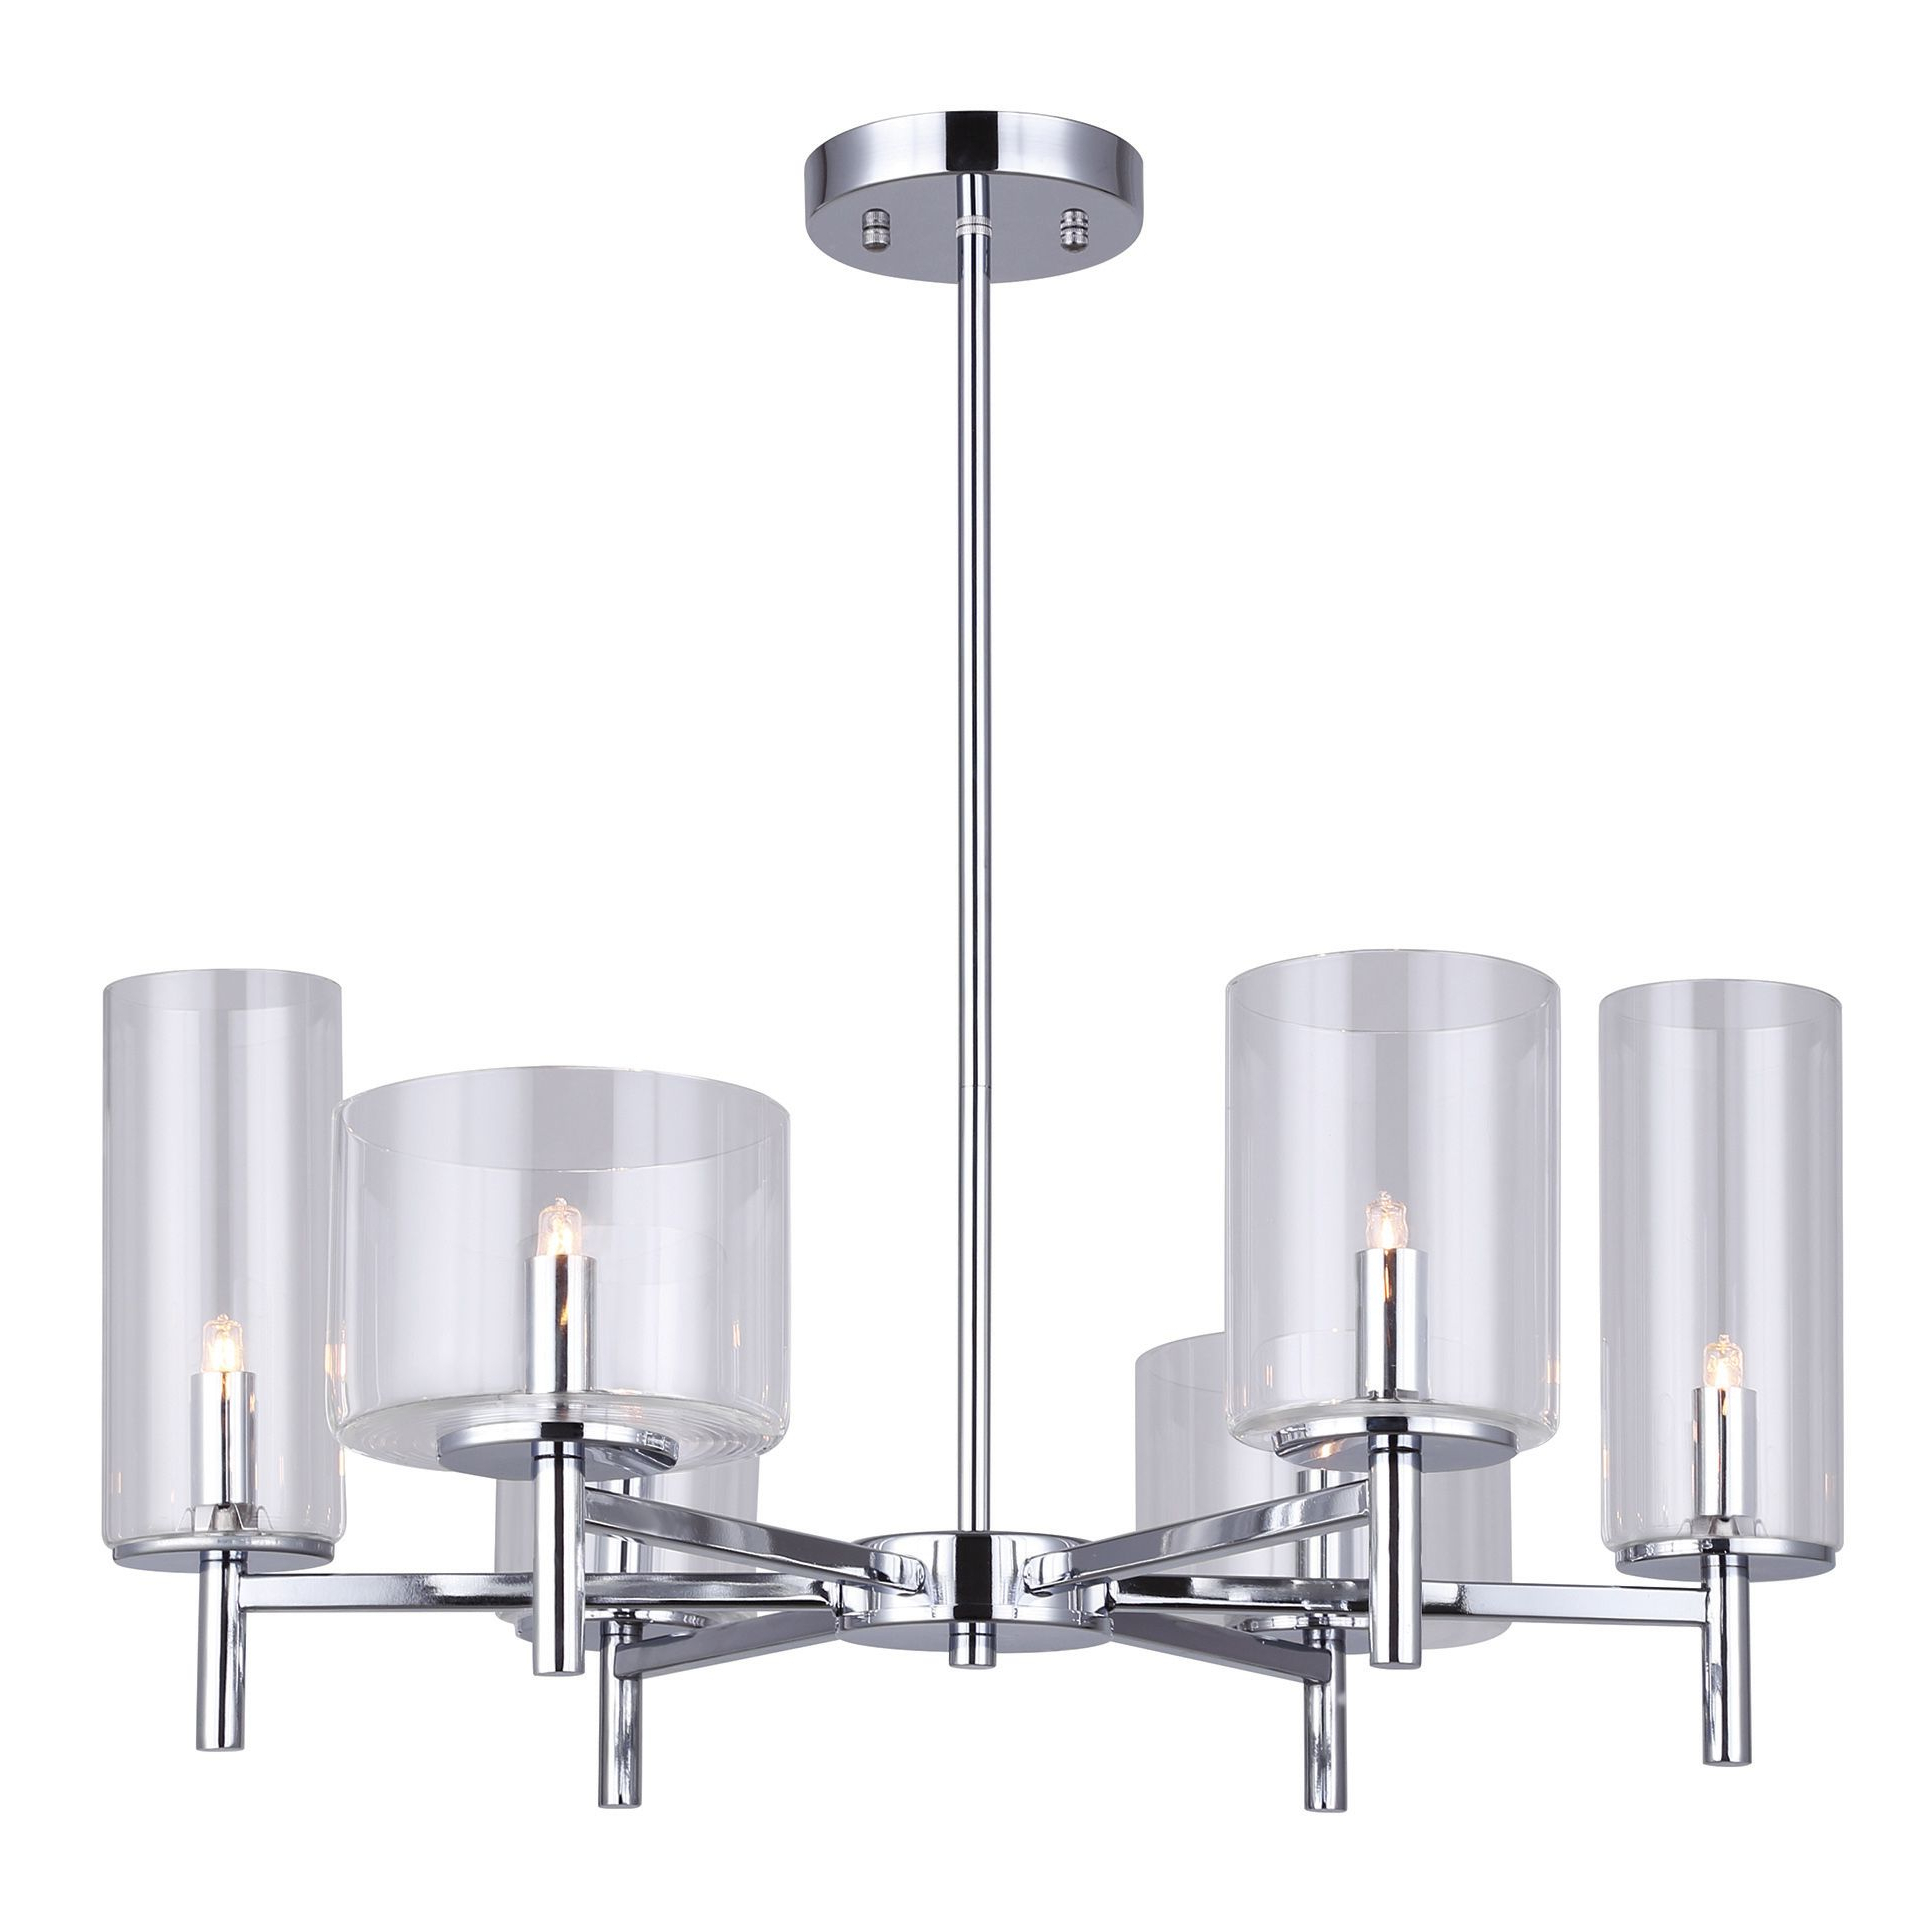 6-Light Malik Chandelier with regard to 2020 La Sarre 3-Light Globe Chandeliers